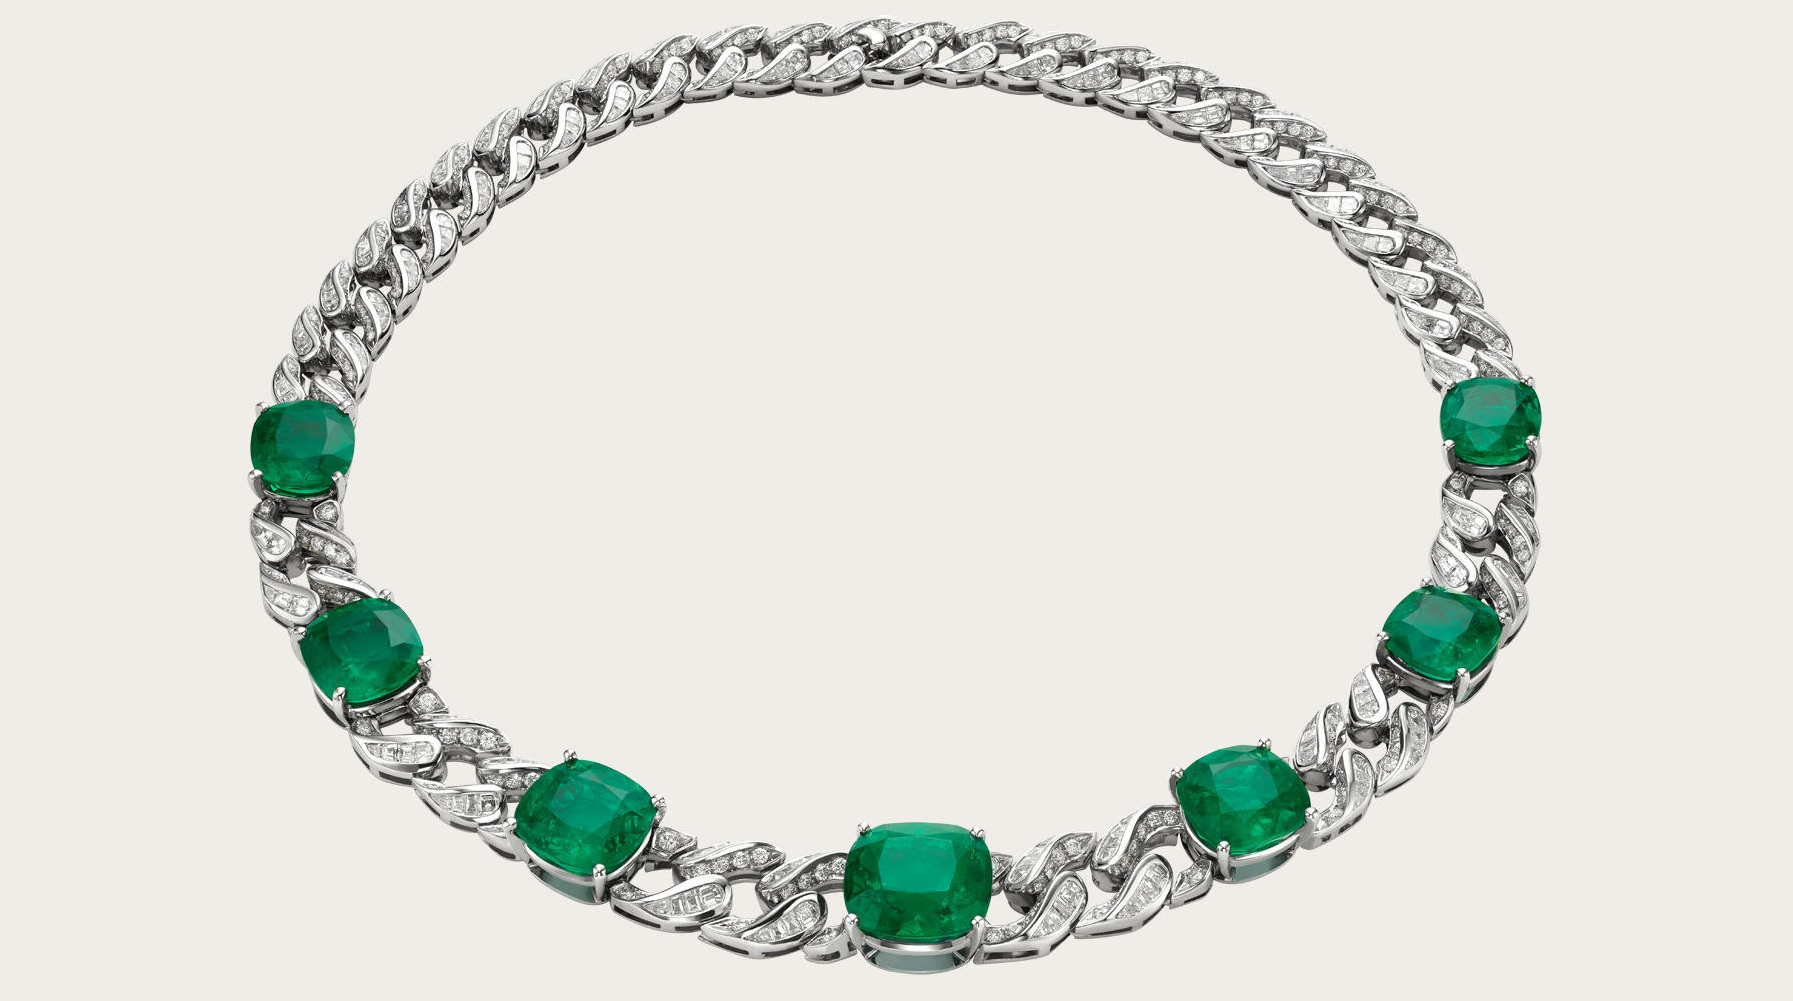 High Jewellry necklace in platinum with 7 cushion shaped emerald (56.4 ct), fancy shaped step cut diamonds and pave diamonds (19.23 ct).